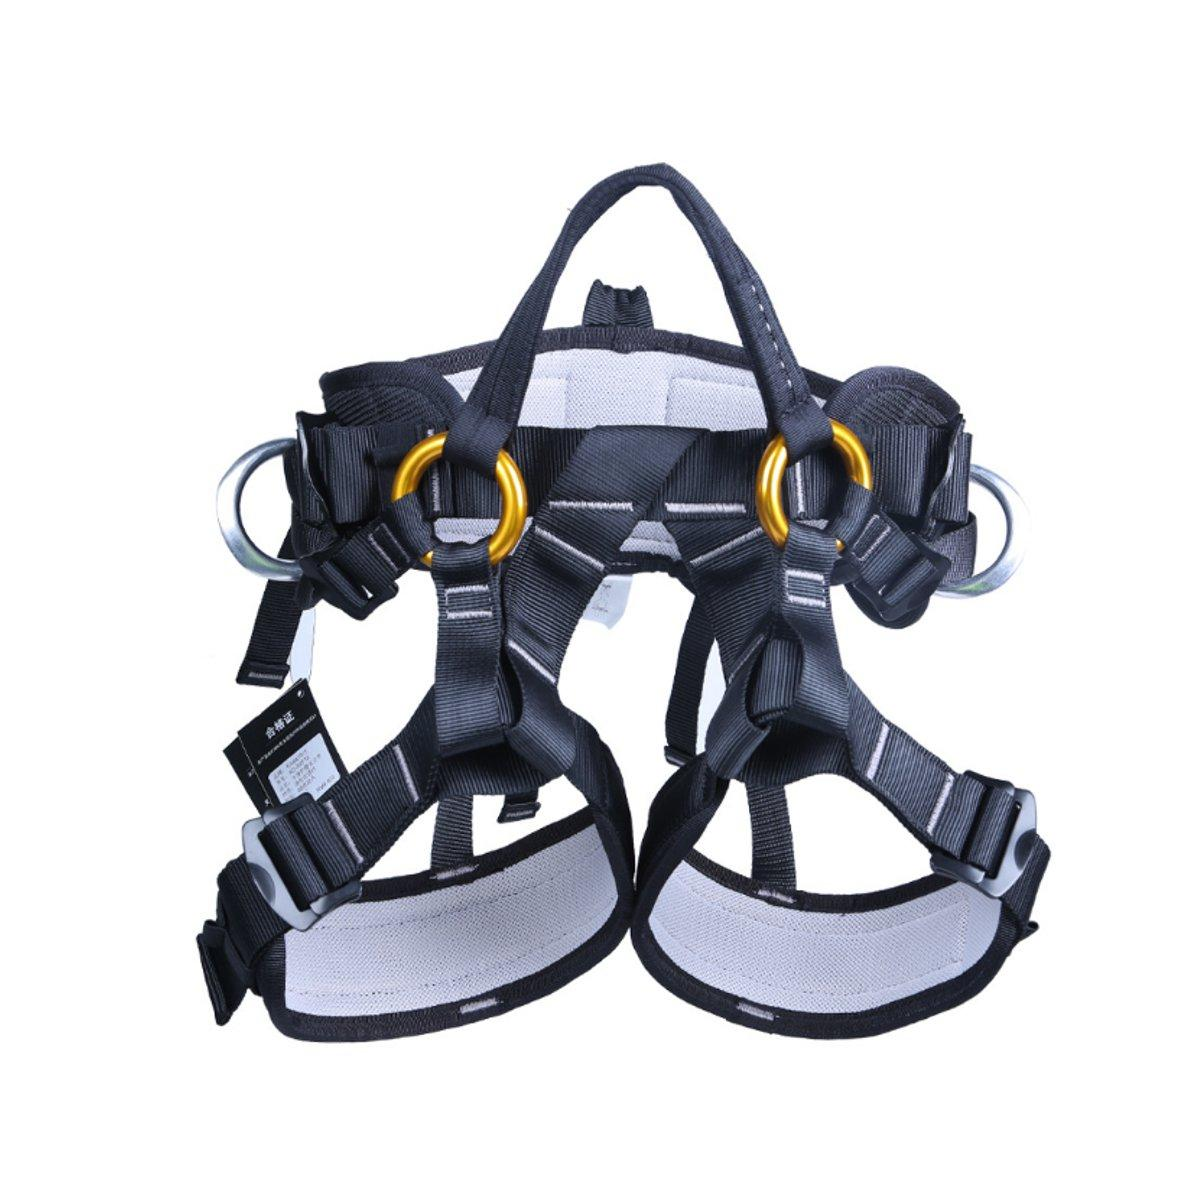 Safety Belt Safety Harness Camping High Altitude Half Body Safety Belt Climbing Belt Safety Equipment